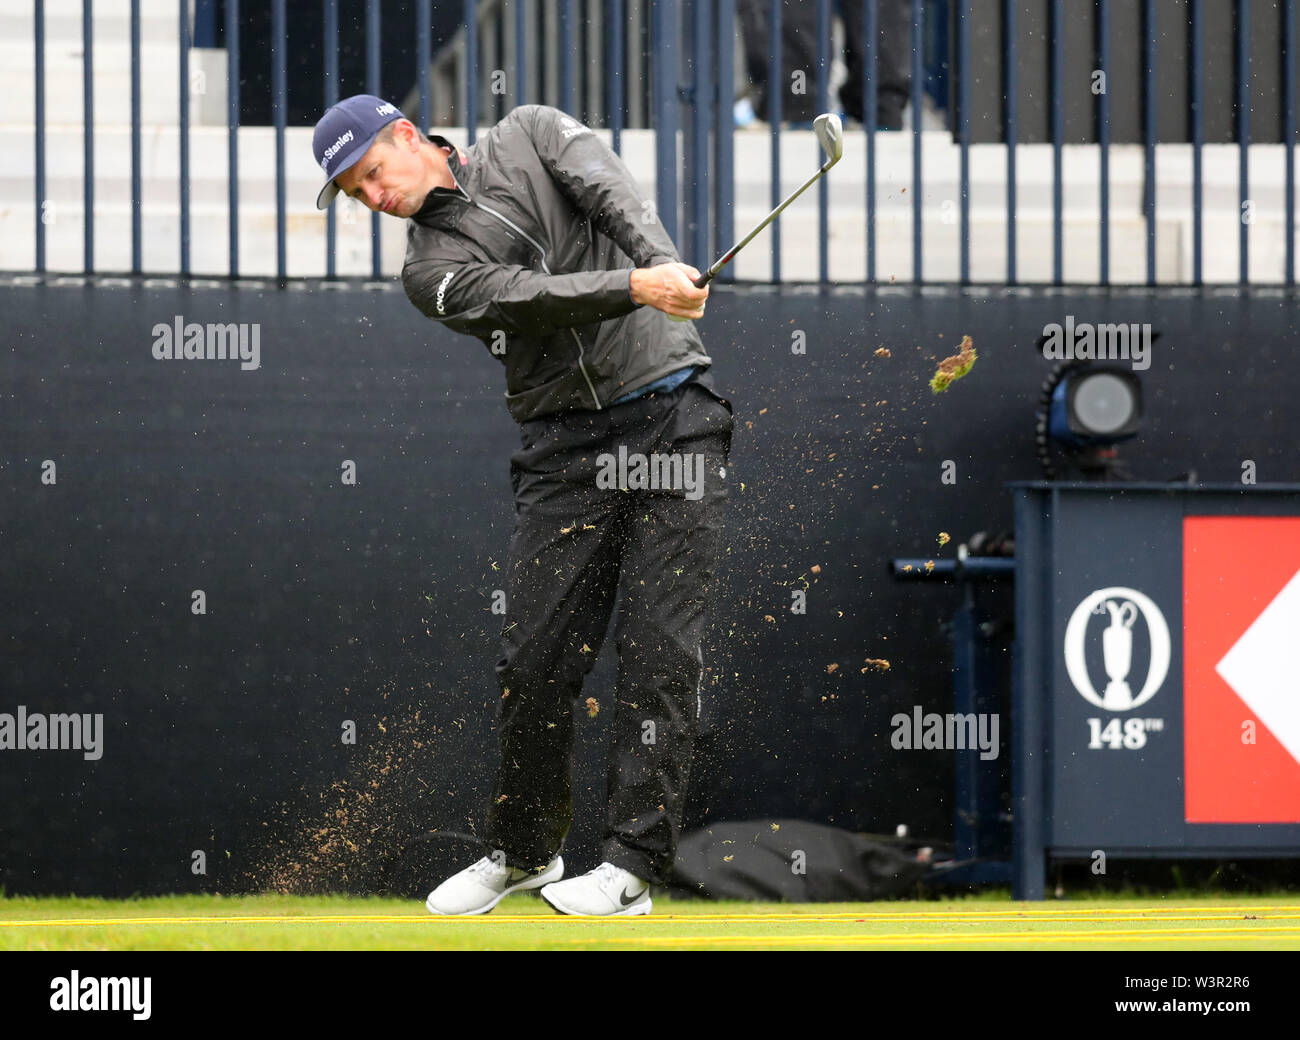 Portrush, County Antrim, Northern Ireland. 17th July 2019. The 148th Open Golf Championship, Royal Portrush Golf Club, Practice day ; Justin Rose (ENG) hits a short iron from the tee at the par three 13th hole Credit: Action Plus Sports Images/Alamy Live News Stock Photo